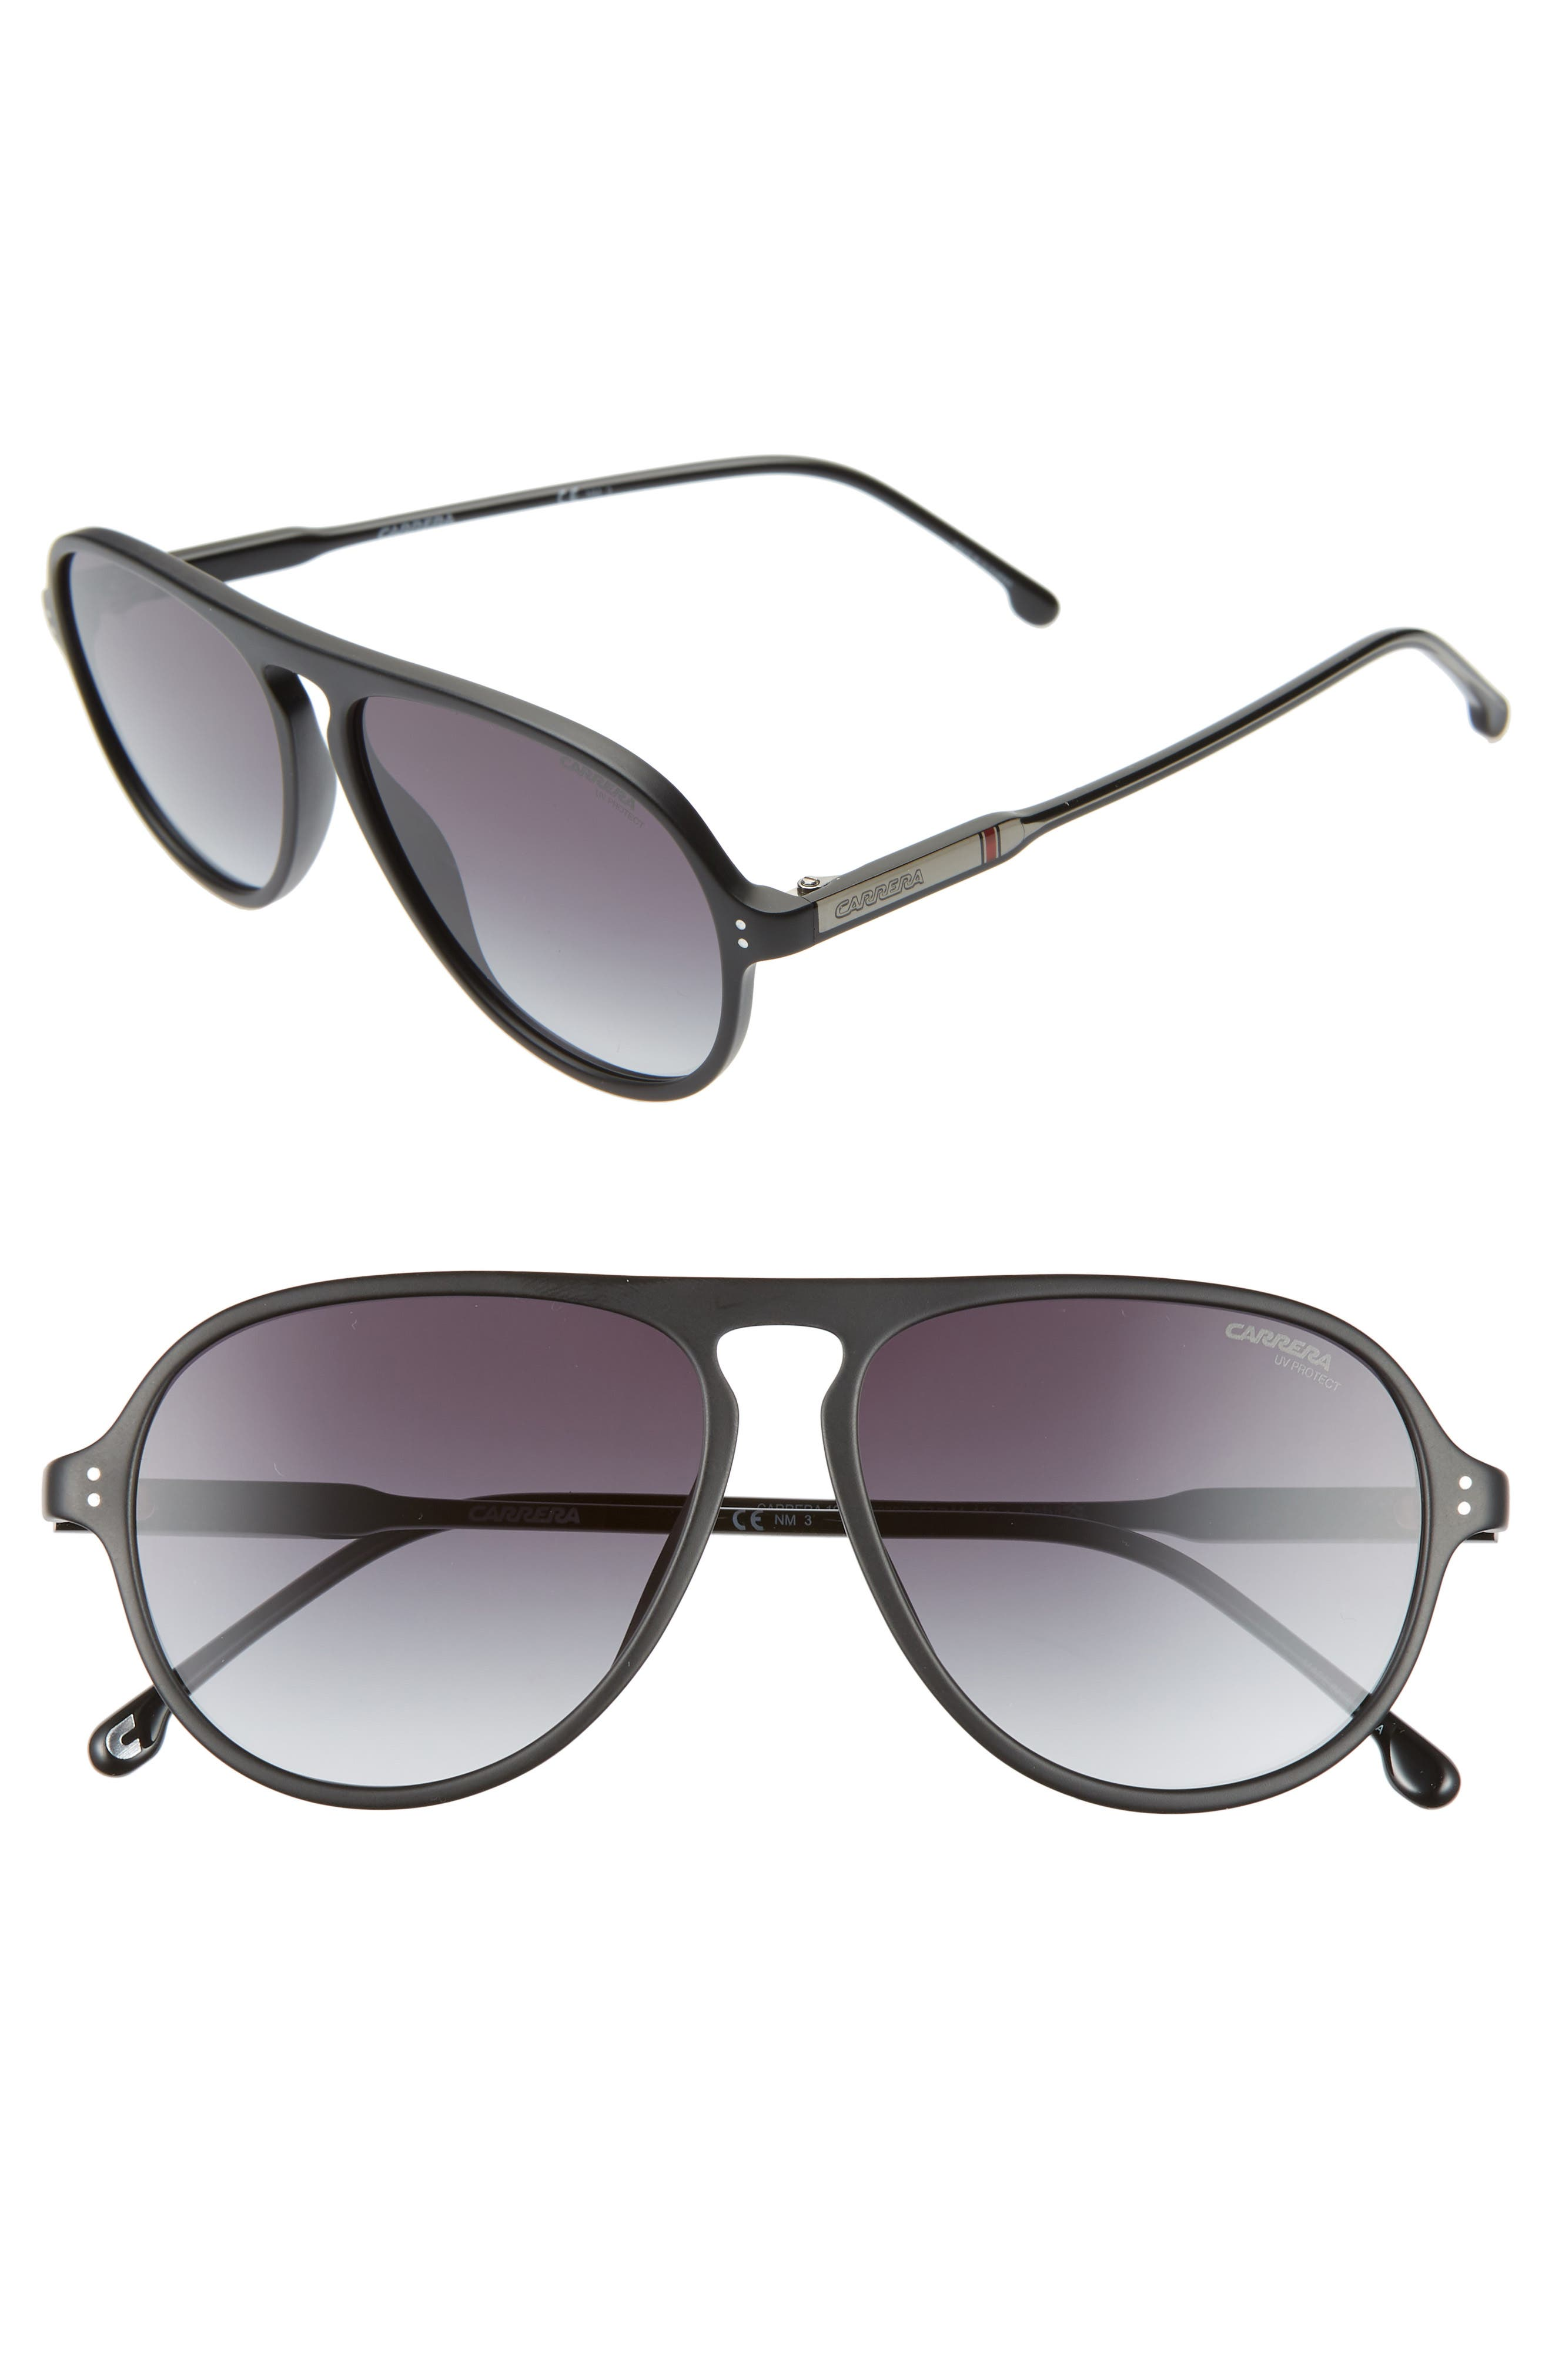 Carrera Eyewear 57Mm Aviator Sunglasses - Matte Black